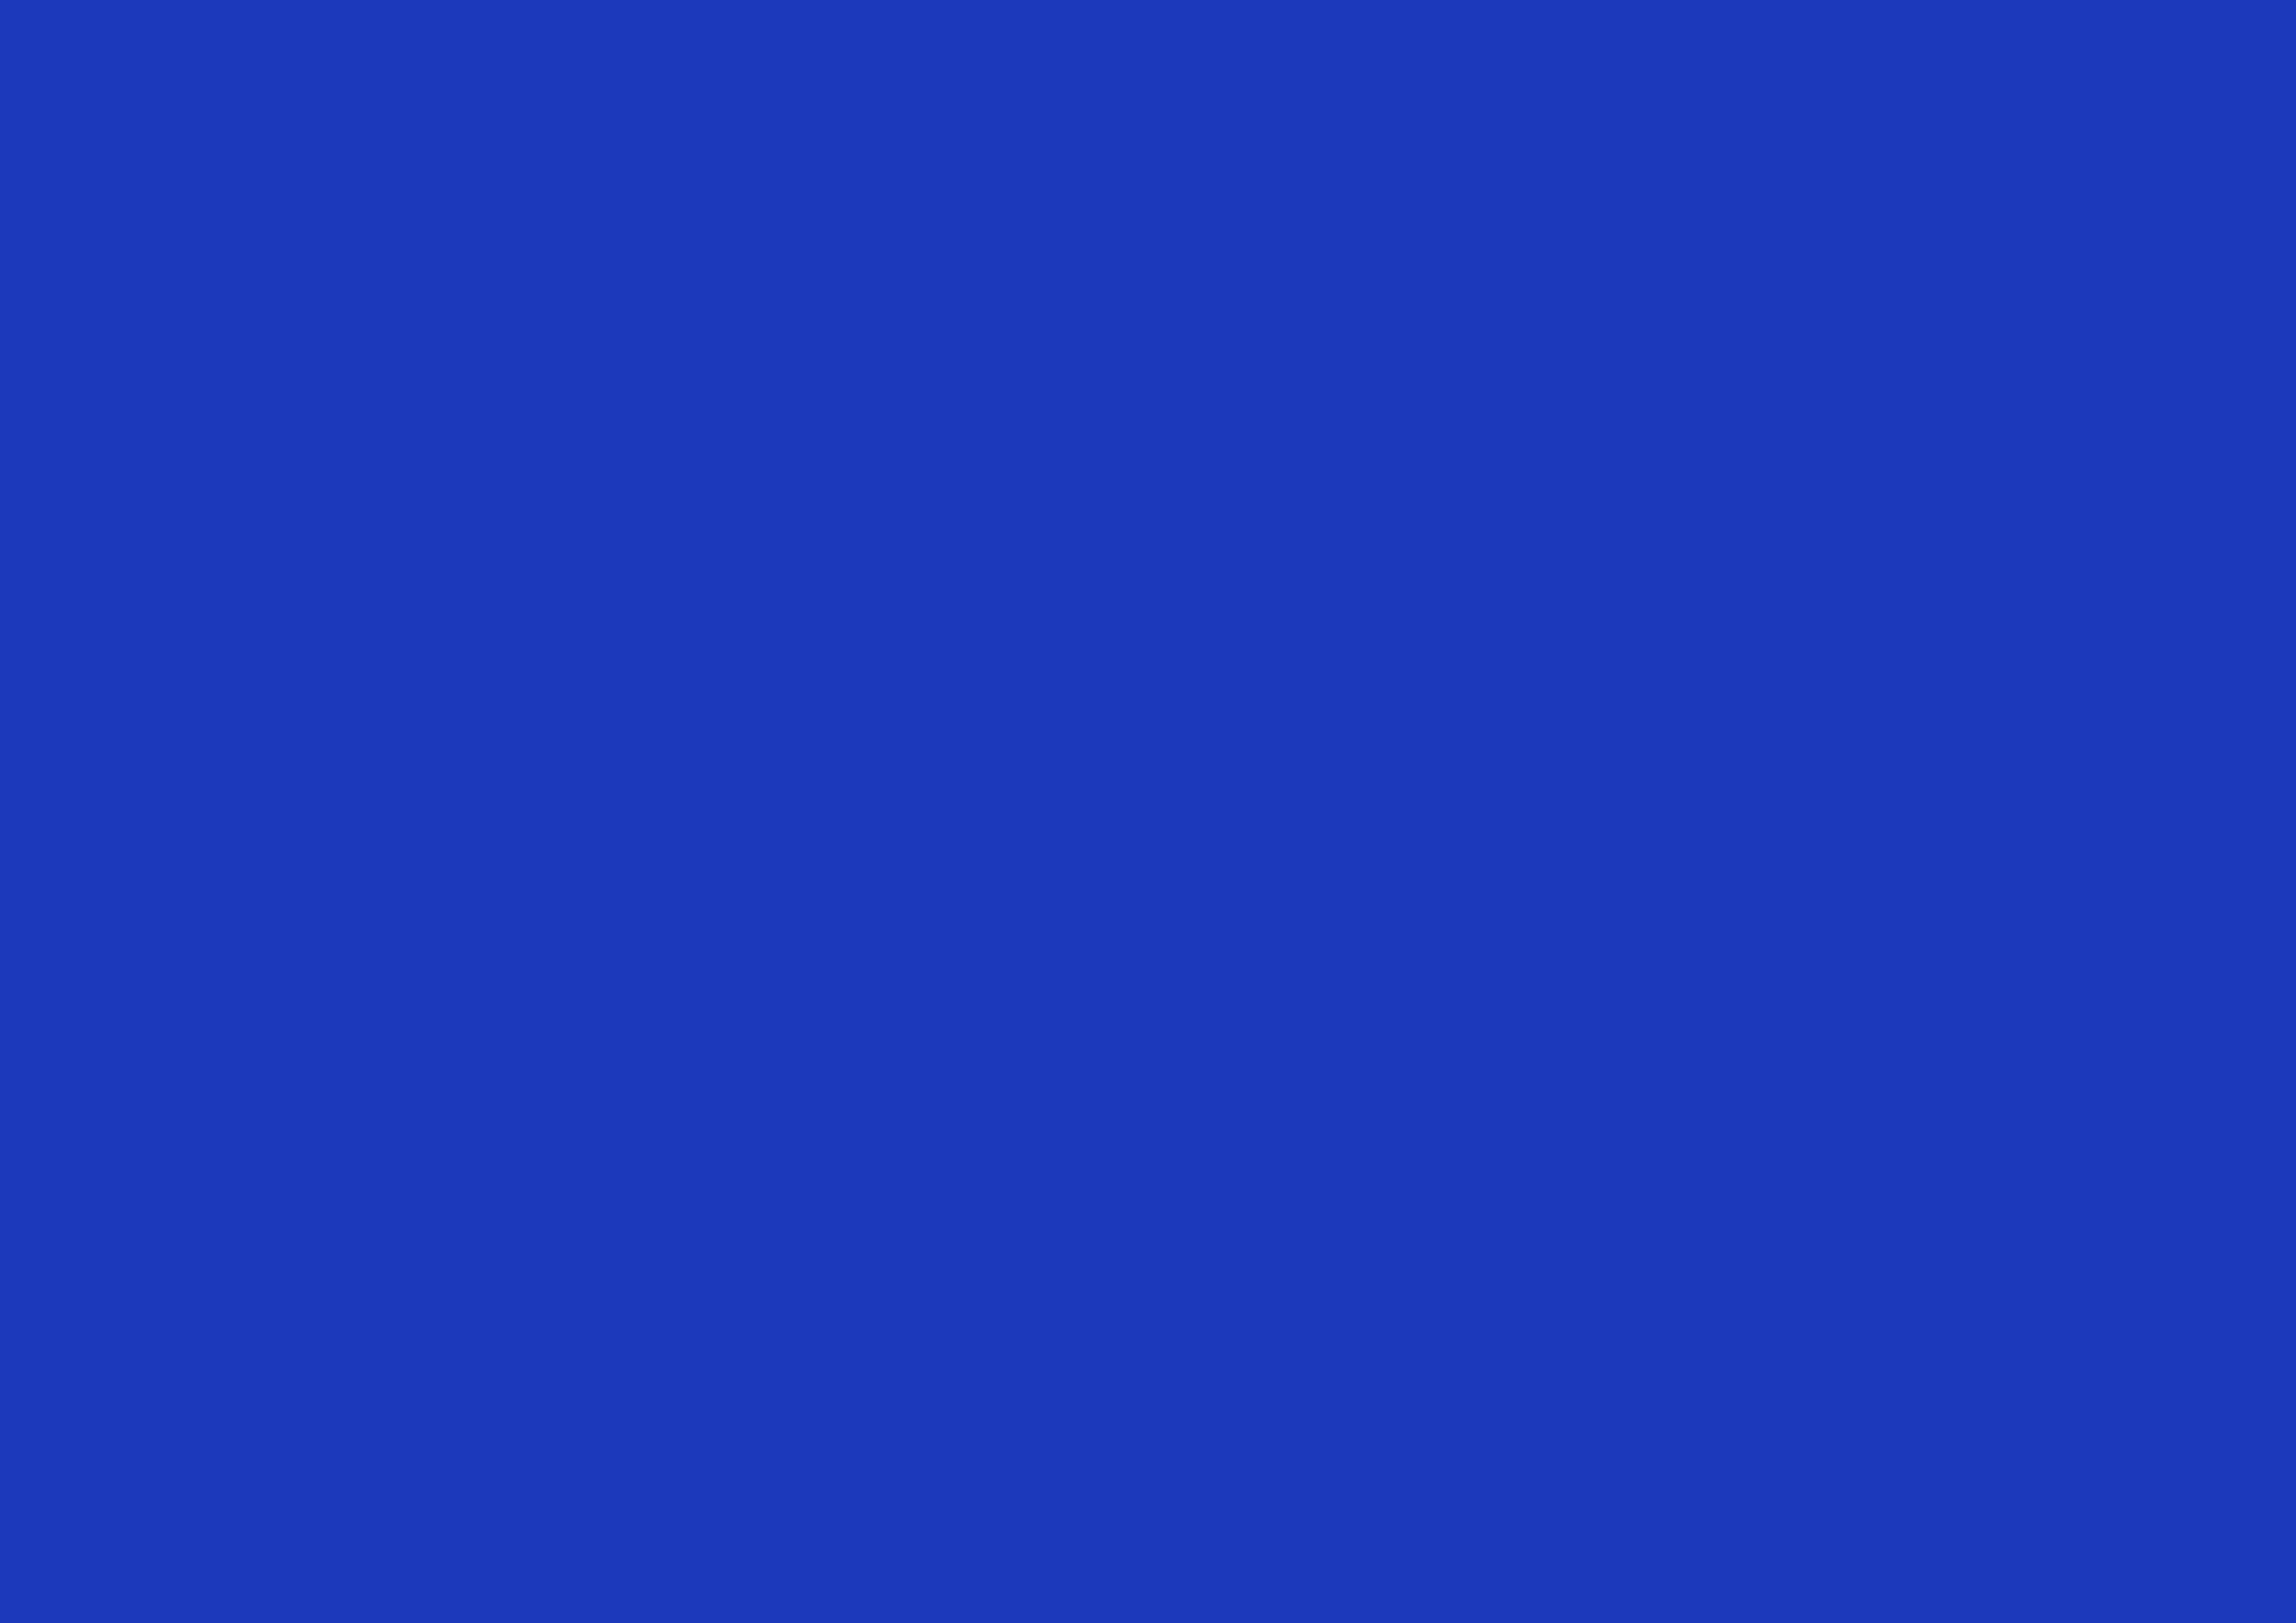 3508x2480 Persian Blue Solid Color Background